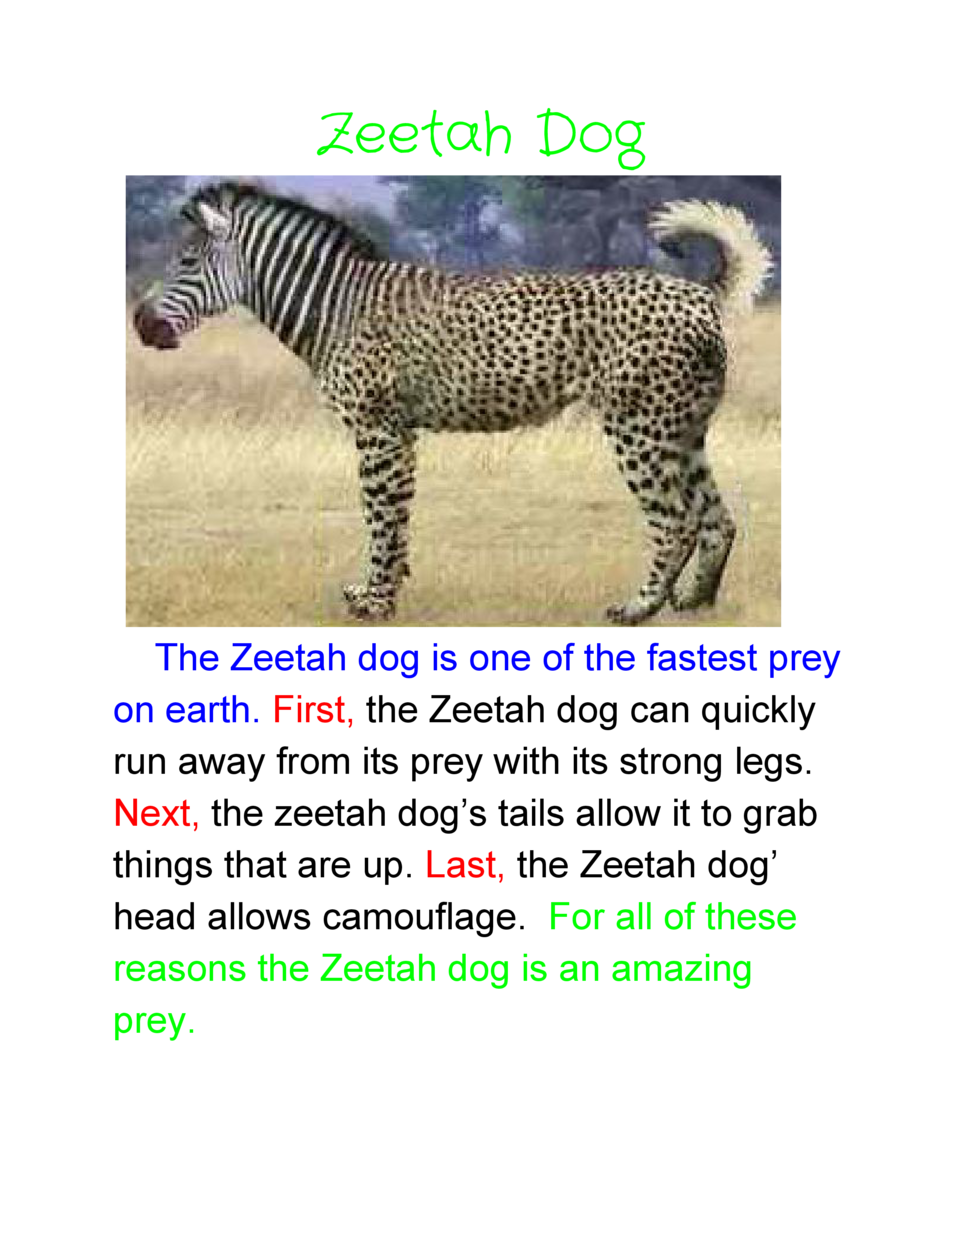 Zeetah Dog              The  Zeetah  dog  is  one  of  the  fastest  prey   on  earth.        the  Zeetah  dog  can  quick...